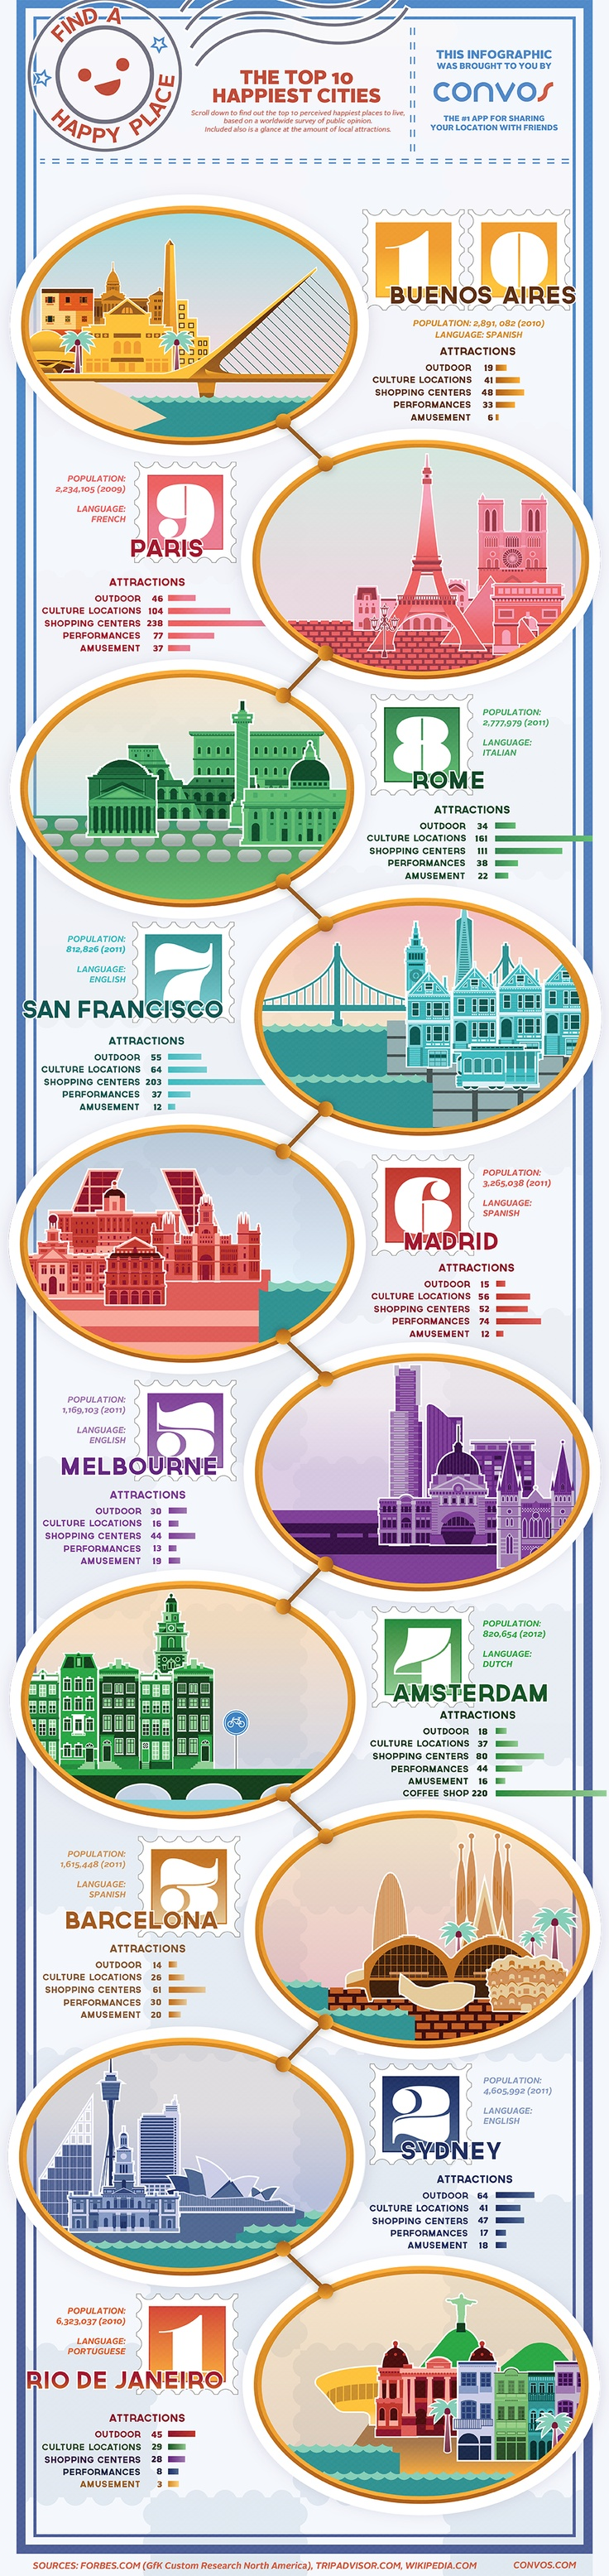 These are the top 10 perceived #happiest places to #live, based on a worldwide survey of public opinion.  #infographic #happy